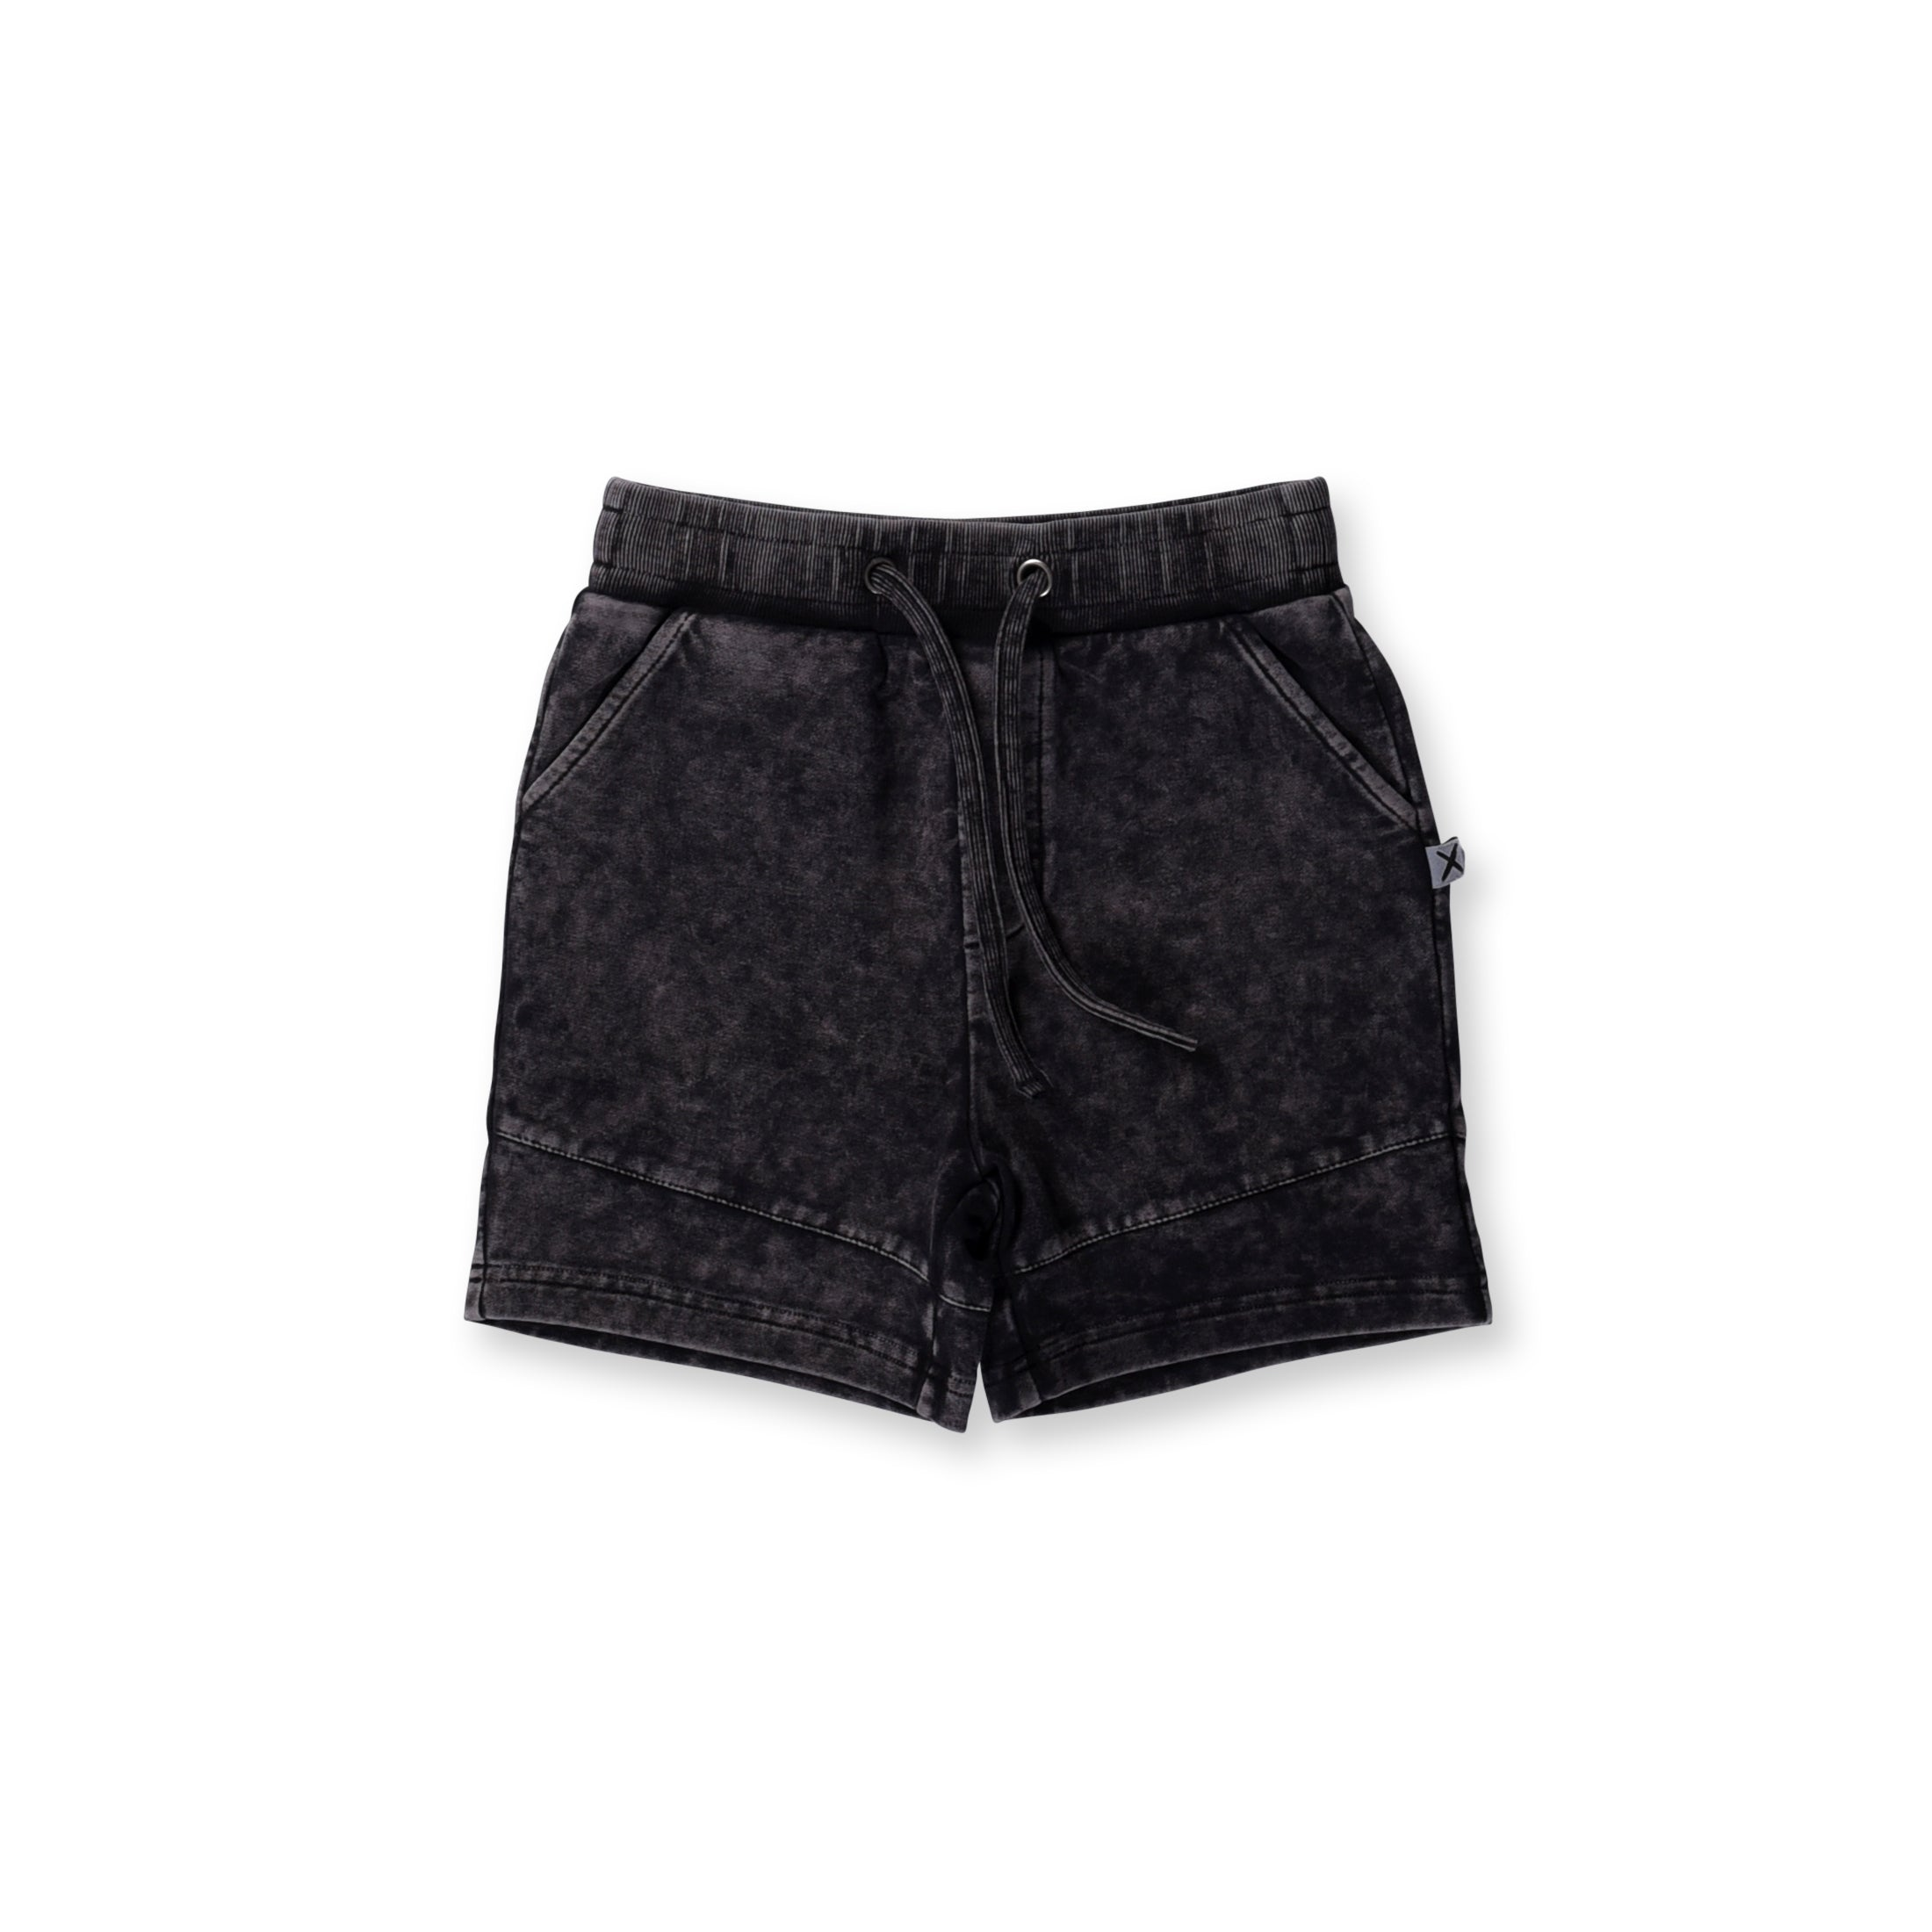 OVER 40% OFF Minti Sliced Short Black Wash SIZE 2 & 8